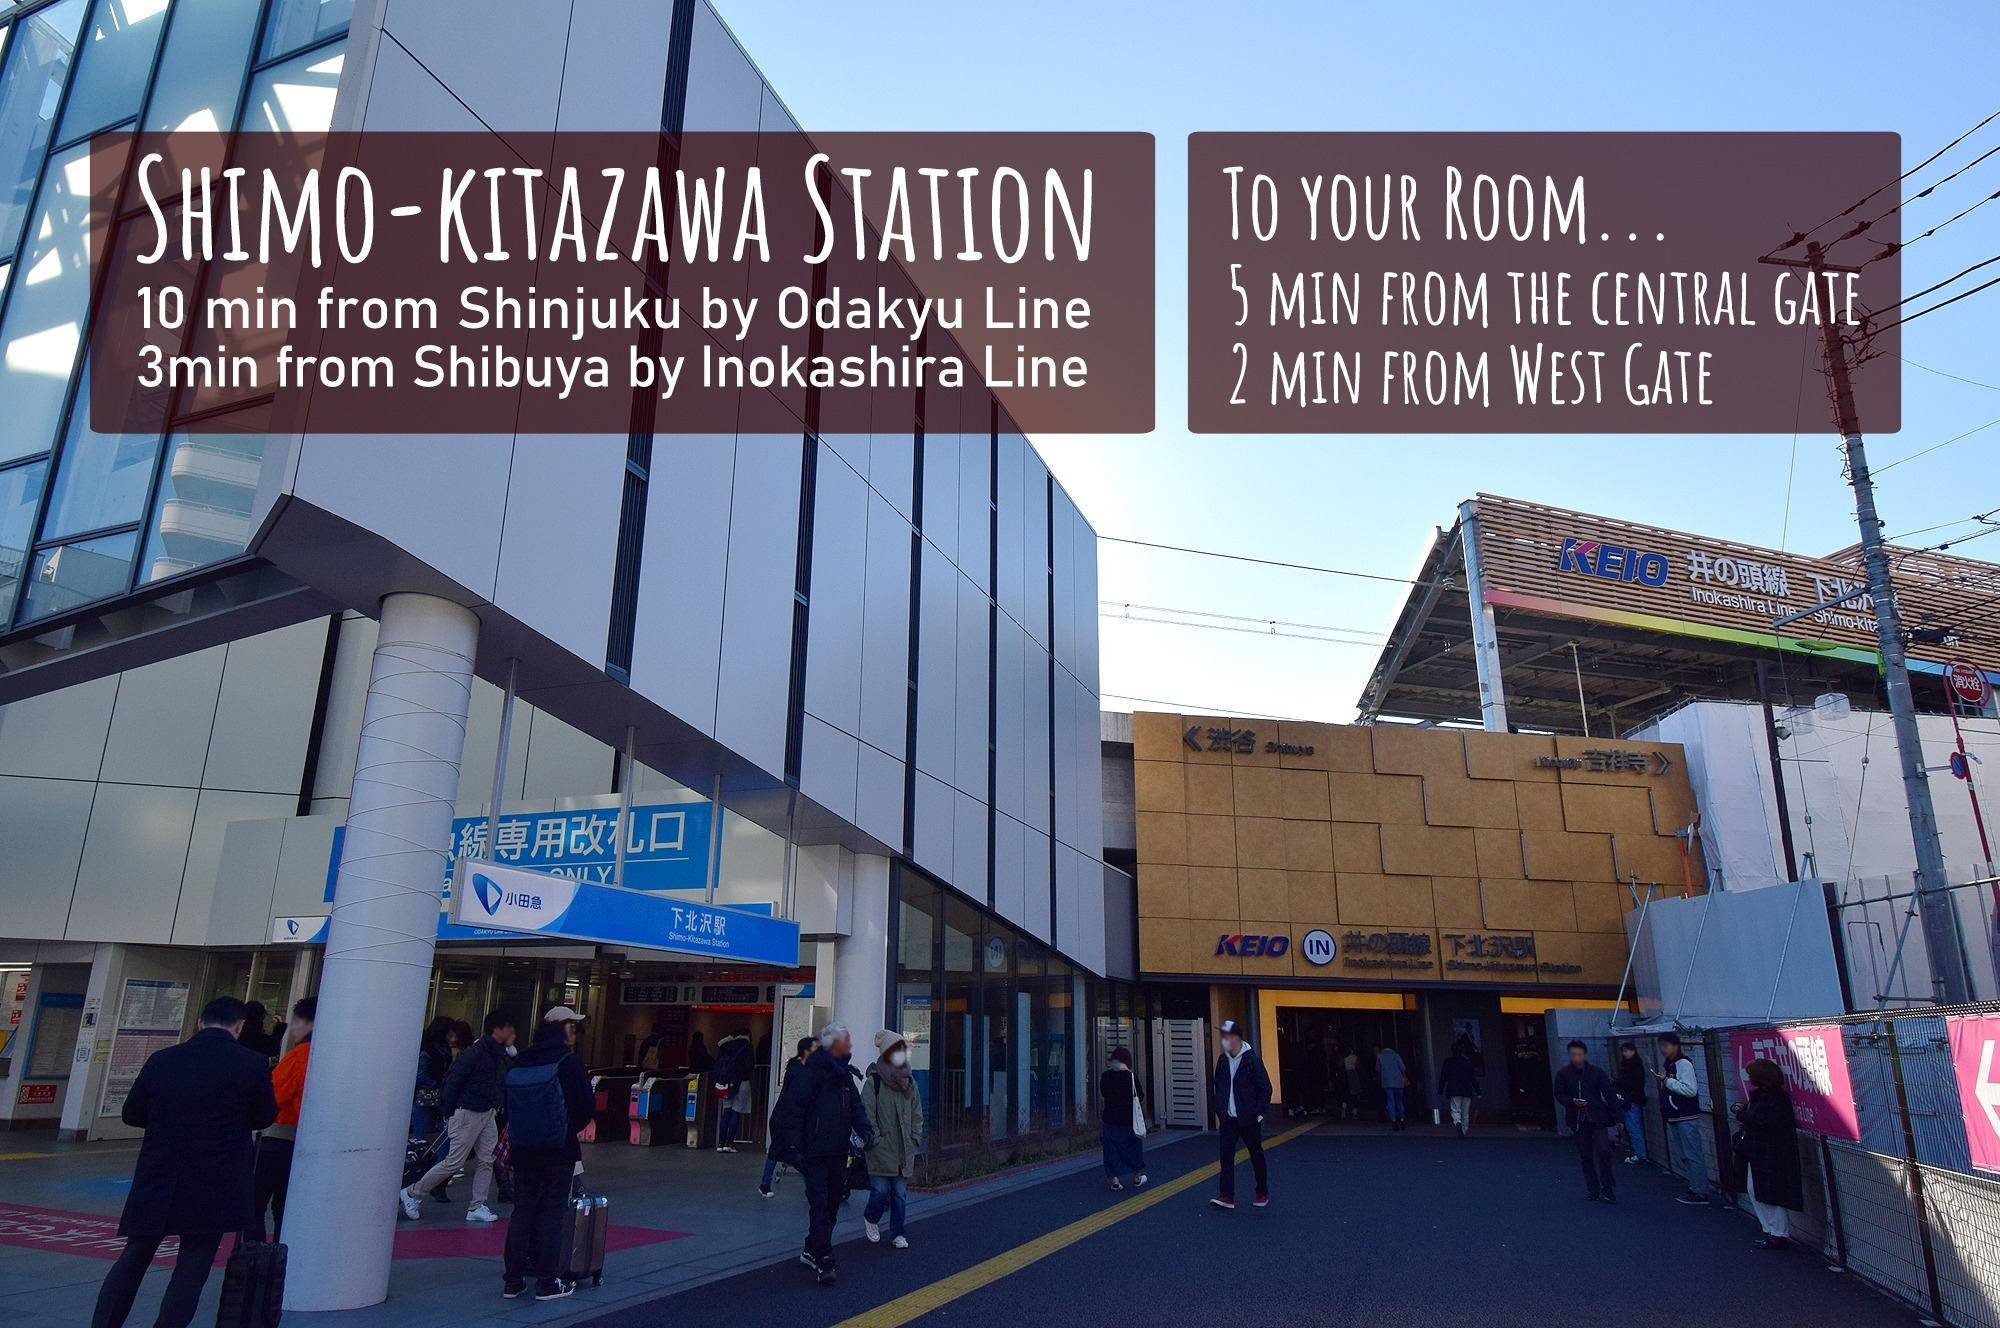 Shimo-kitazawa Station. 10 min from Shinjuku by Odakyu Line. 3min from Shibuya by Inokashira Line. To your Room... 5 min from the central gate. 2 min from West Gate.